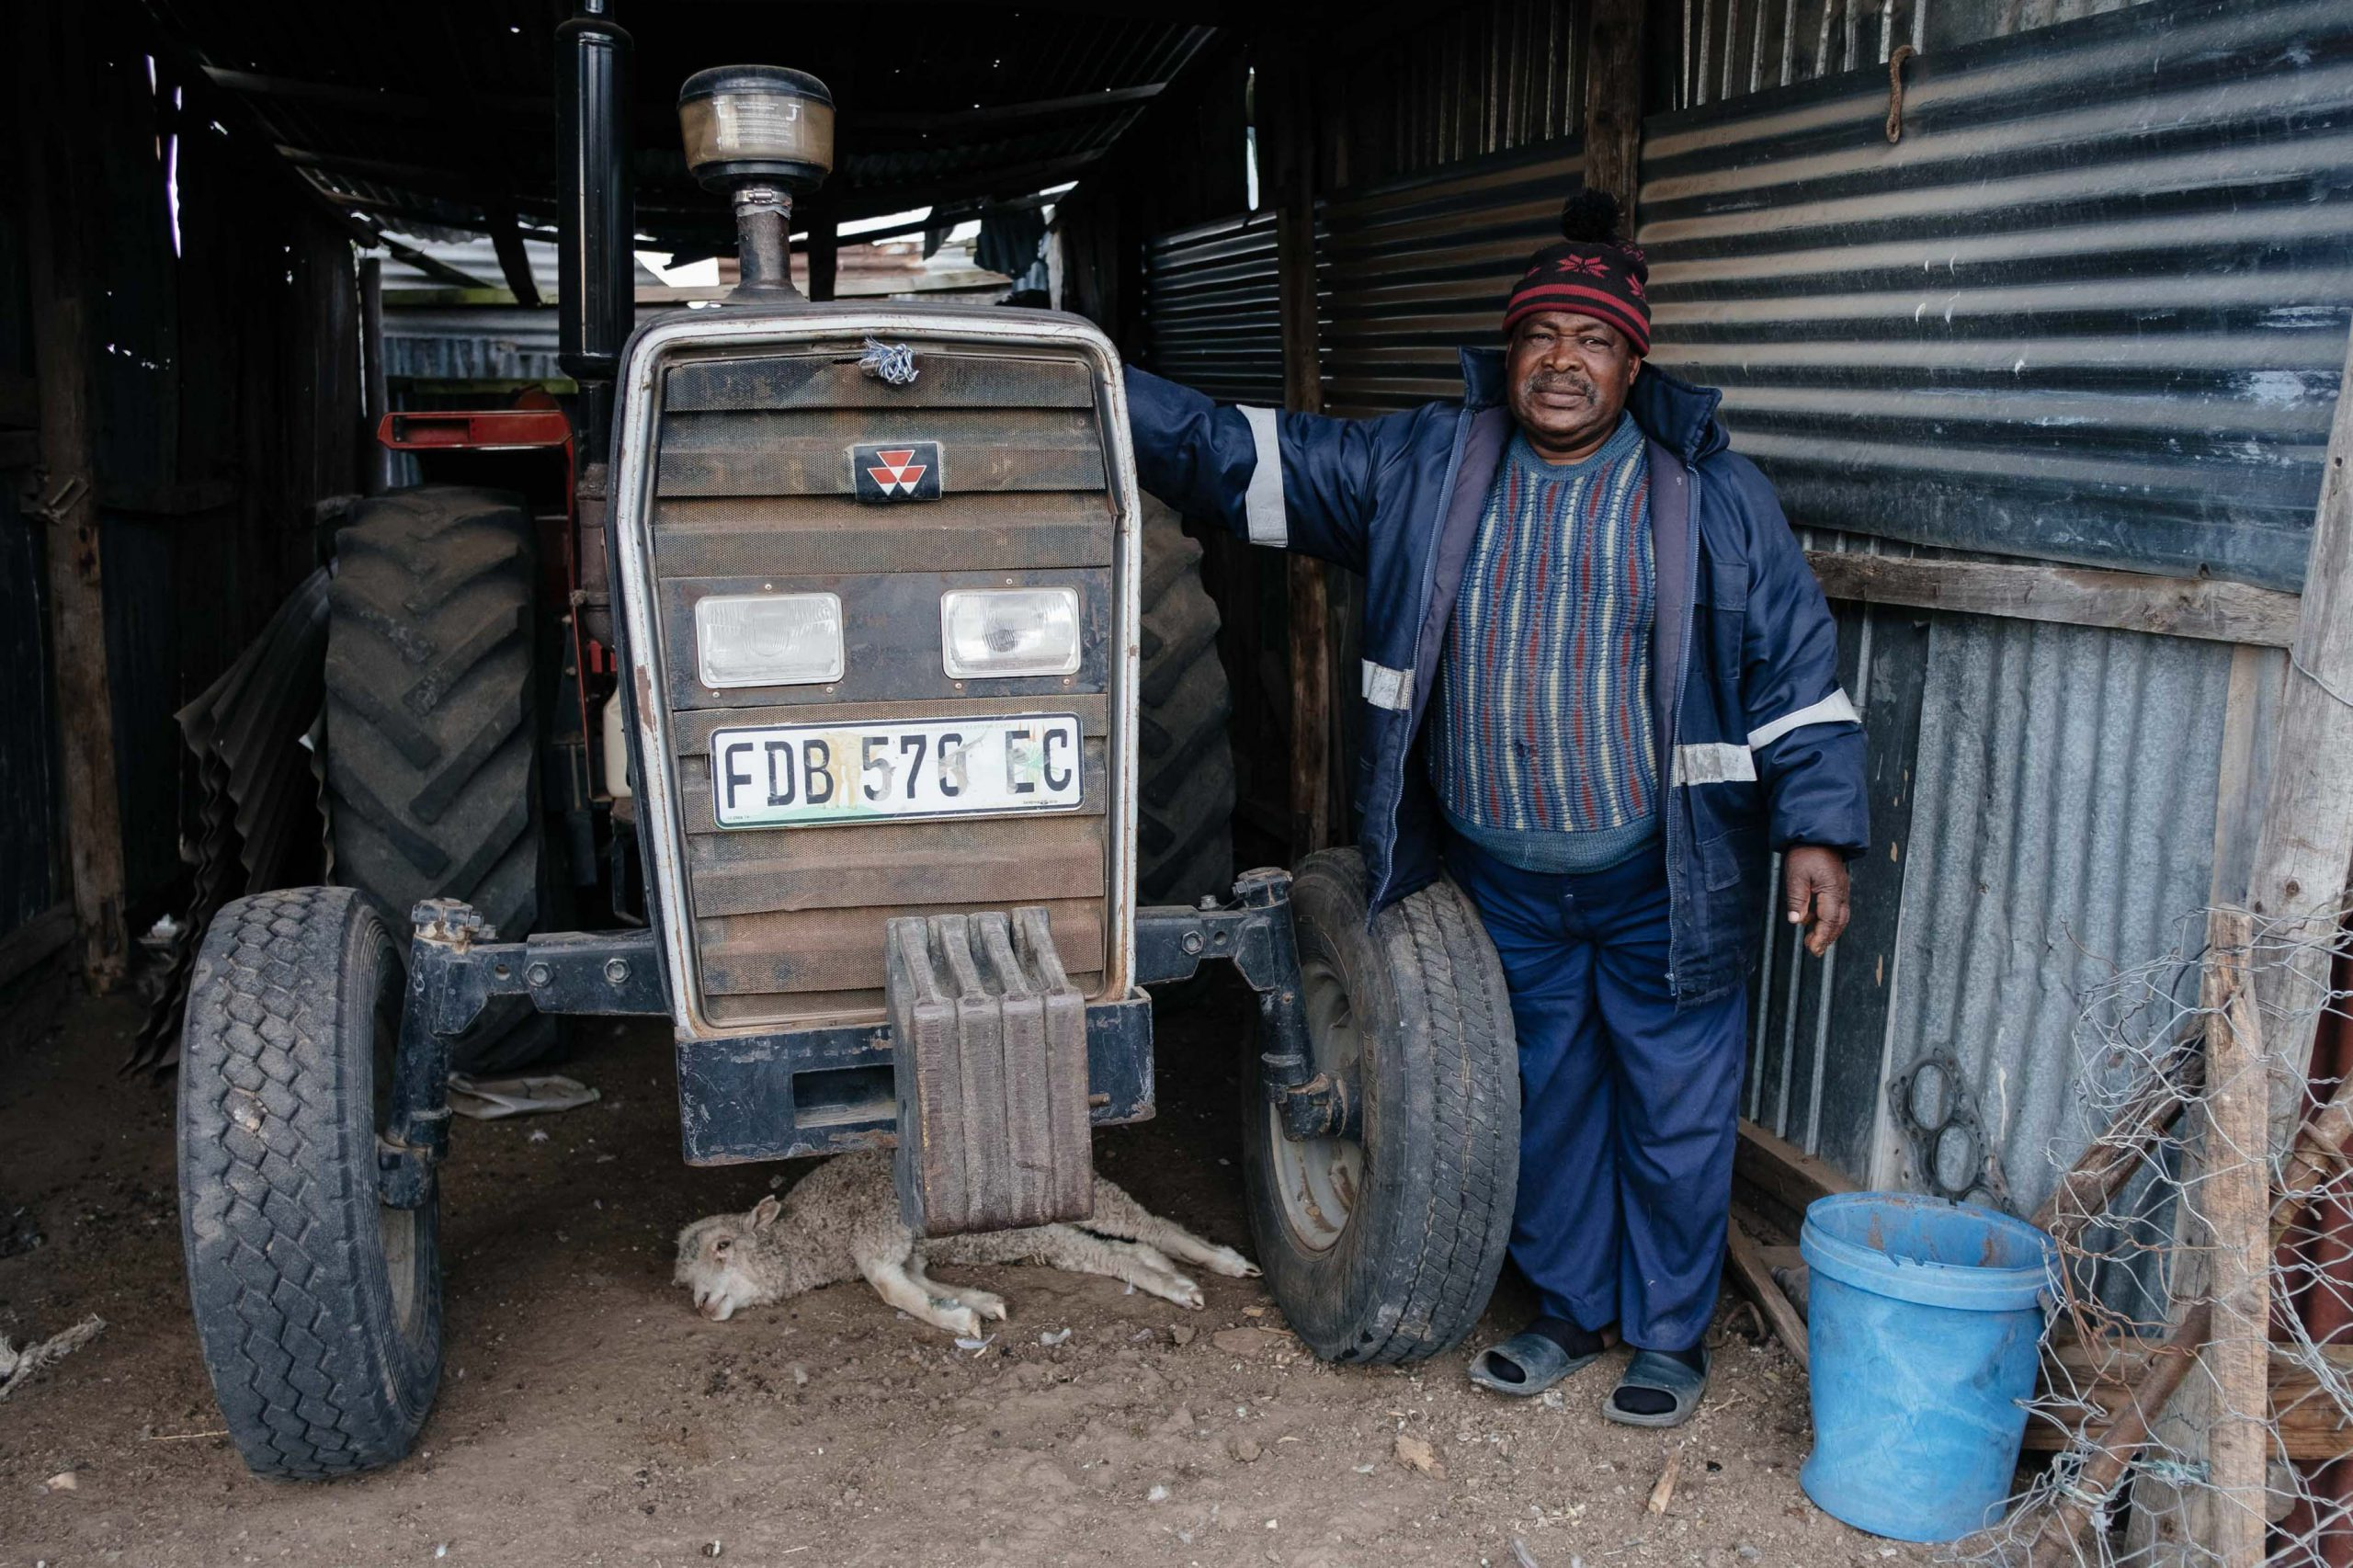 10 November 2019: Farmer Samuel Mthobeli Mwahla, 67, at his tractor shed in Nqgwele Village near King William's Town in the Eastern Cape. Unpredictable rainfall has meant that many locals have held off on planting crops in newly ploughed land.